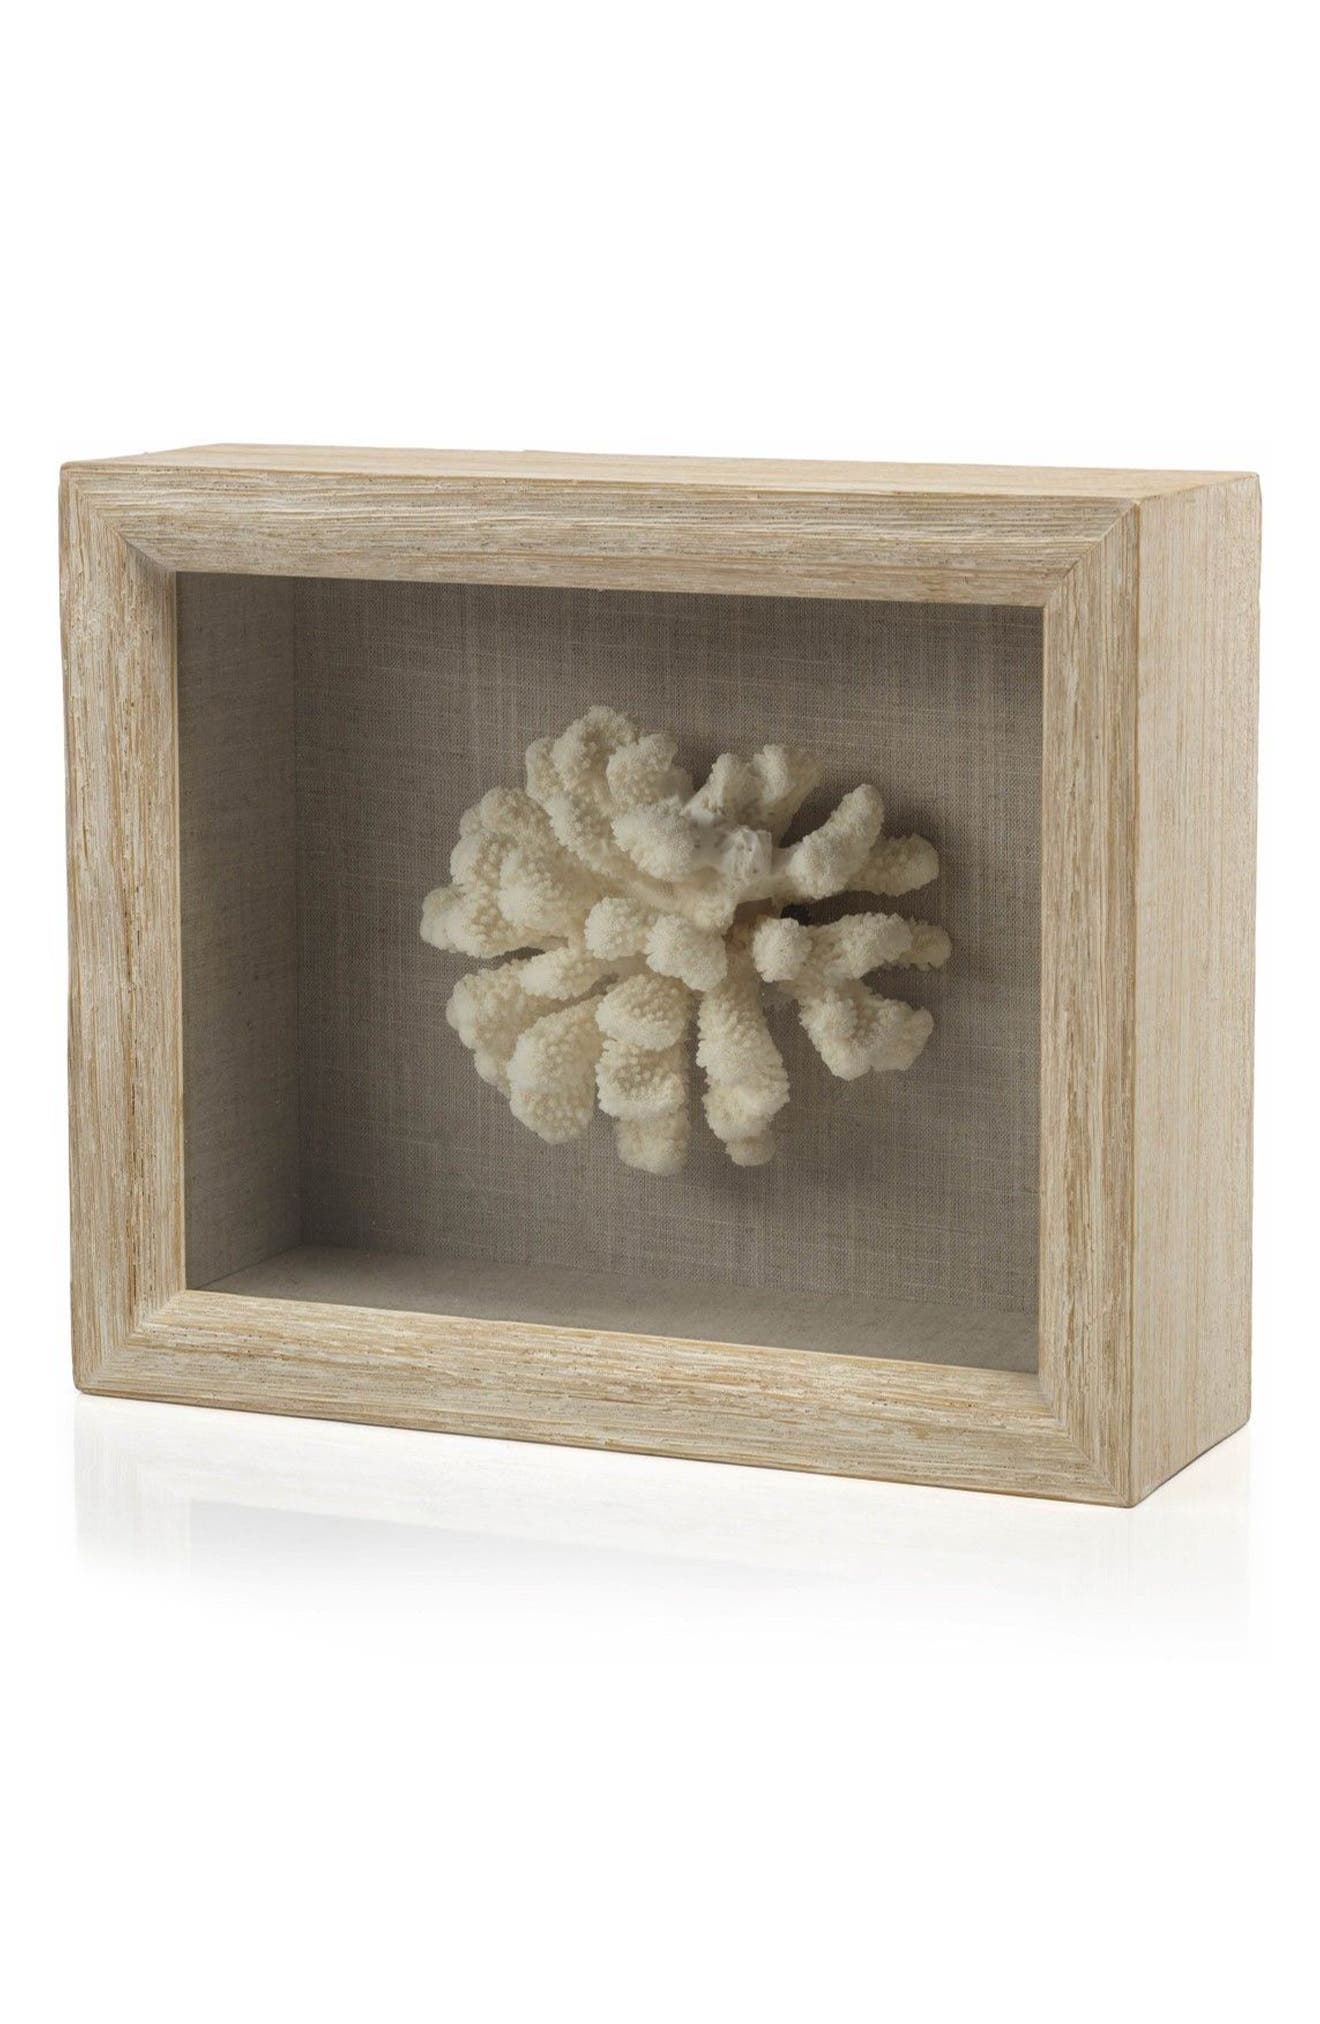 Cat's Paw Coral Shadow Box Art,                             Main thumbnail 1, color,                             Off-White/ Brown/ Beige